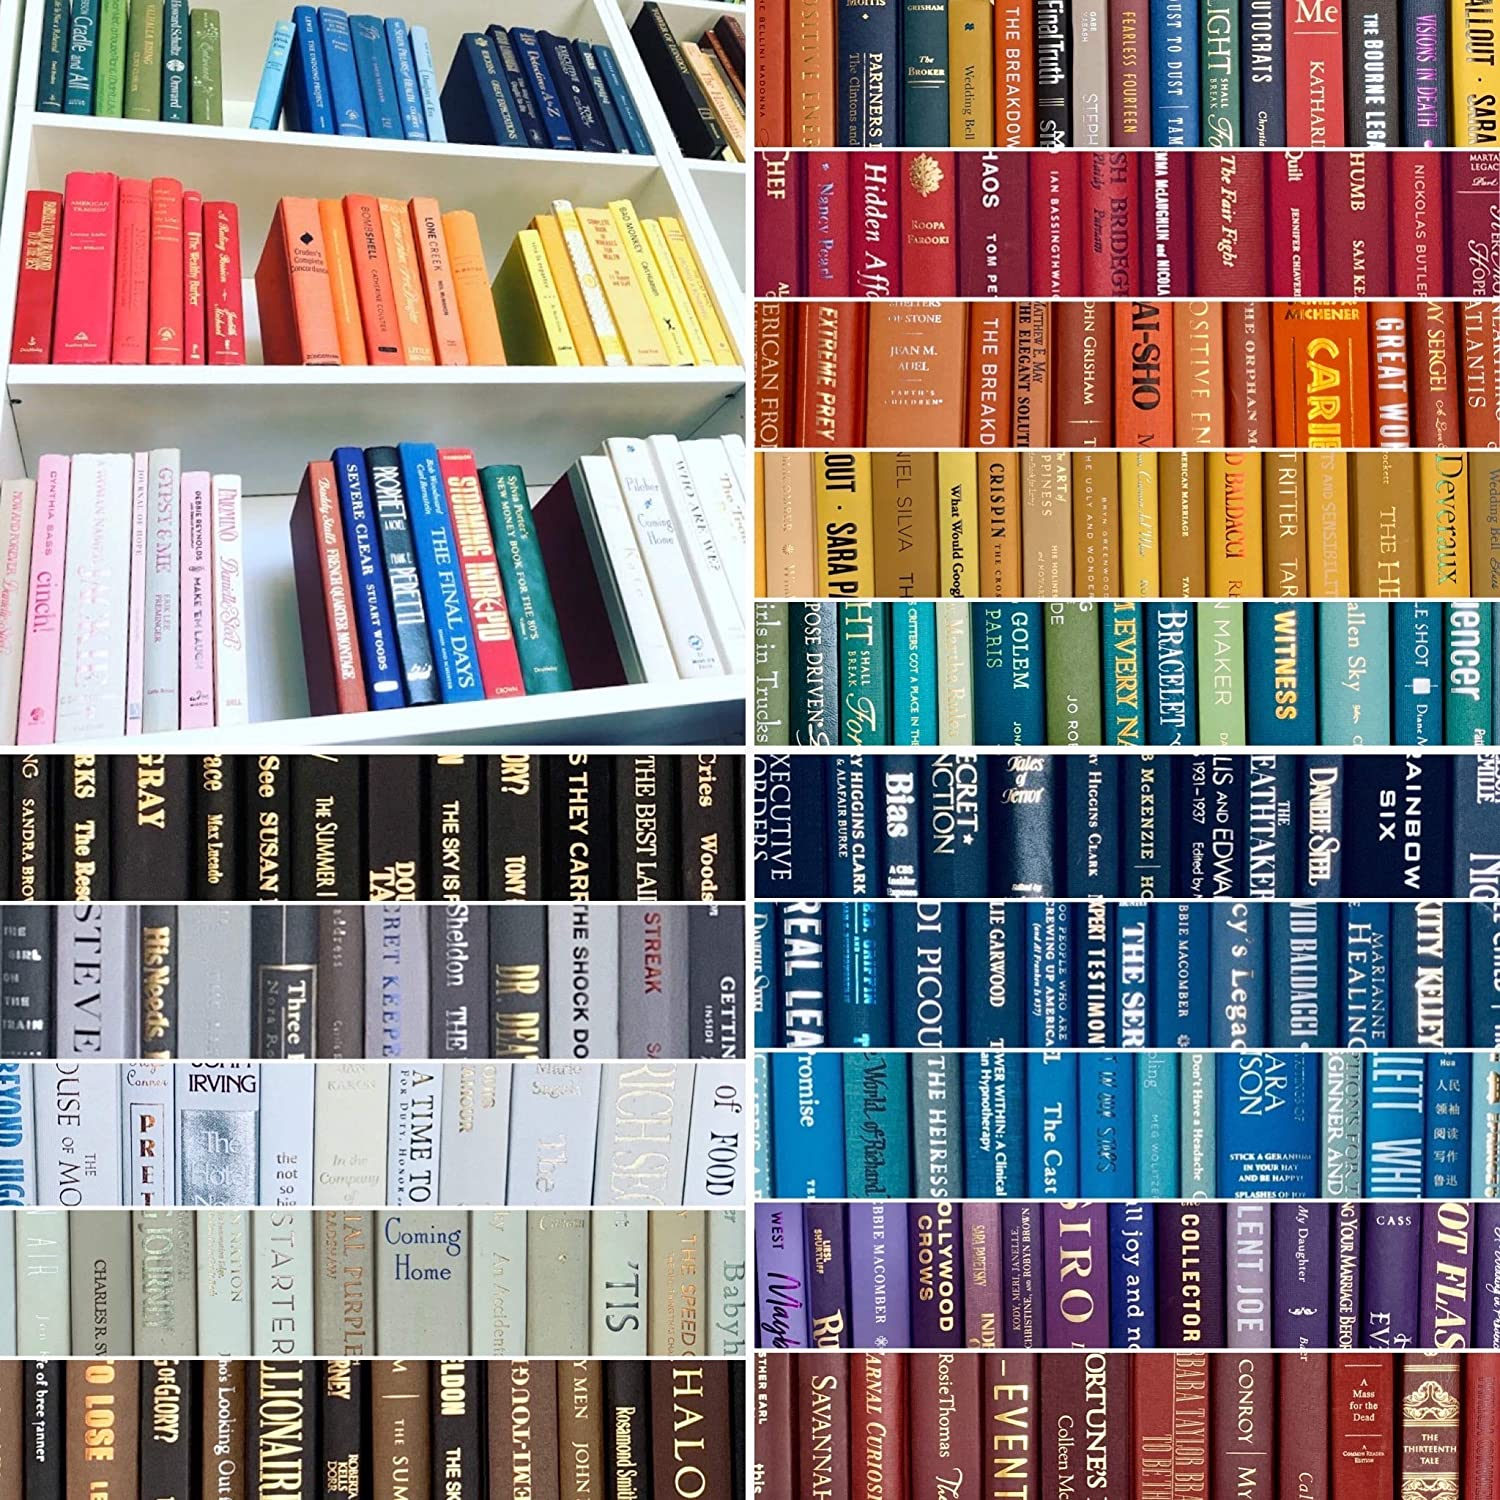 Real Books By Color For Decor Choose Your Colors Used Hardcover Books Perfect For Office Or Home Décor Interior Design Wedding Display Stage And Set Props Or Instant Library Handmade Amazon Com